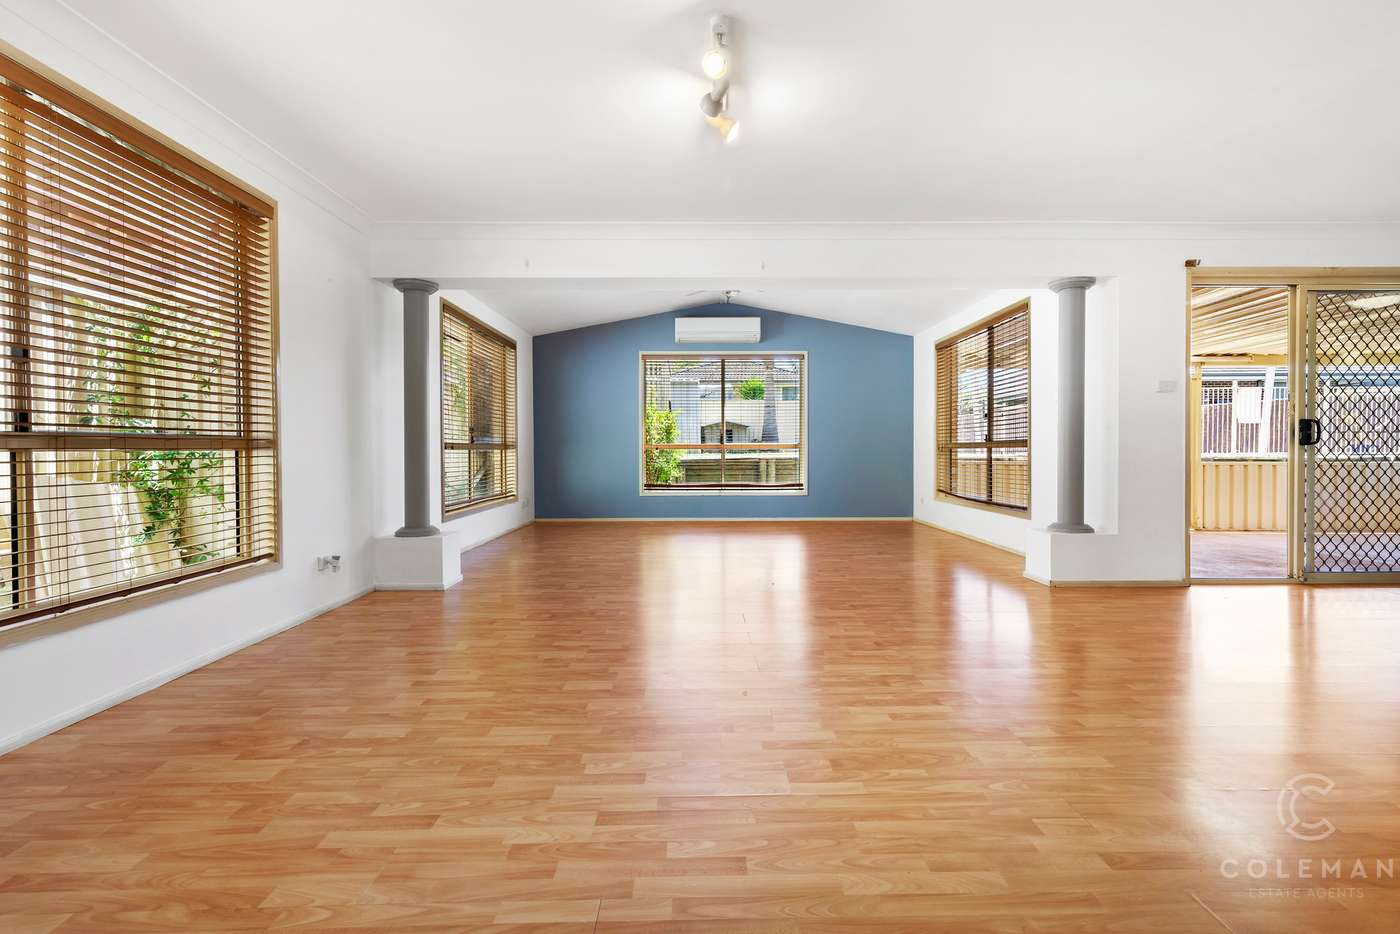 Sixth view of Homely house listing, 28 Menindee Avenue, Blue Haven NSW 2262